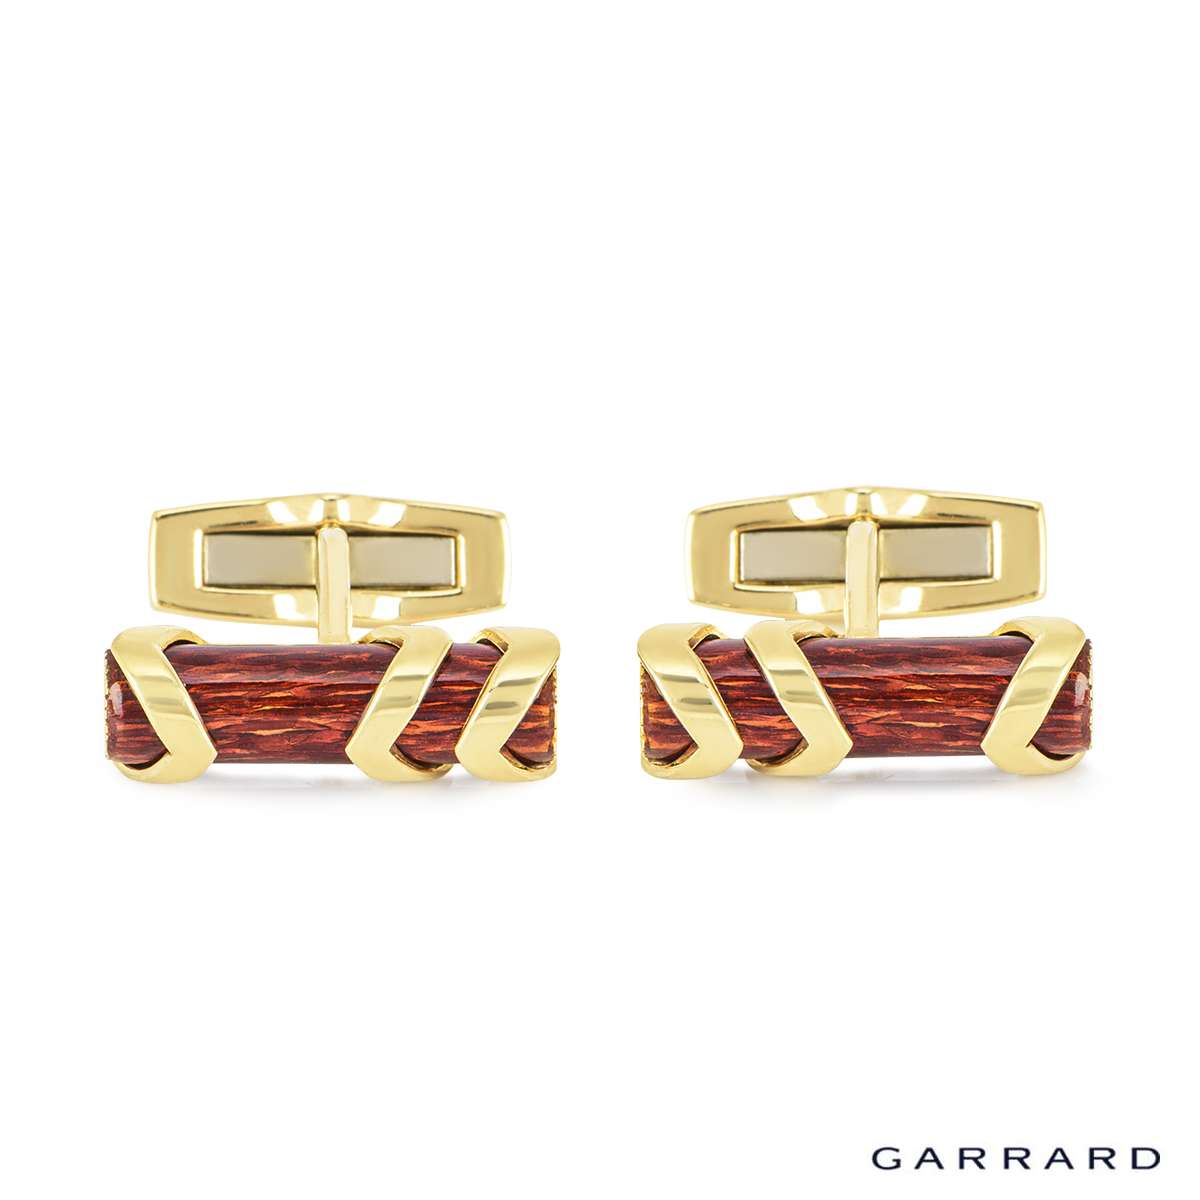 Garrard 18k Yellow Gold Enamel Log Cufflinks